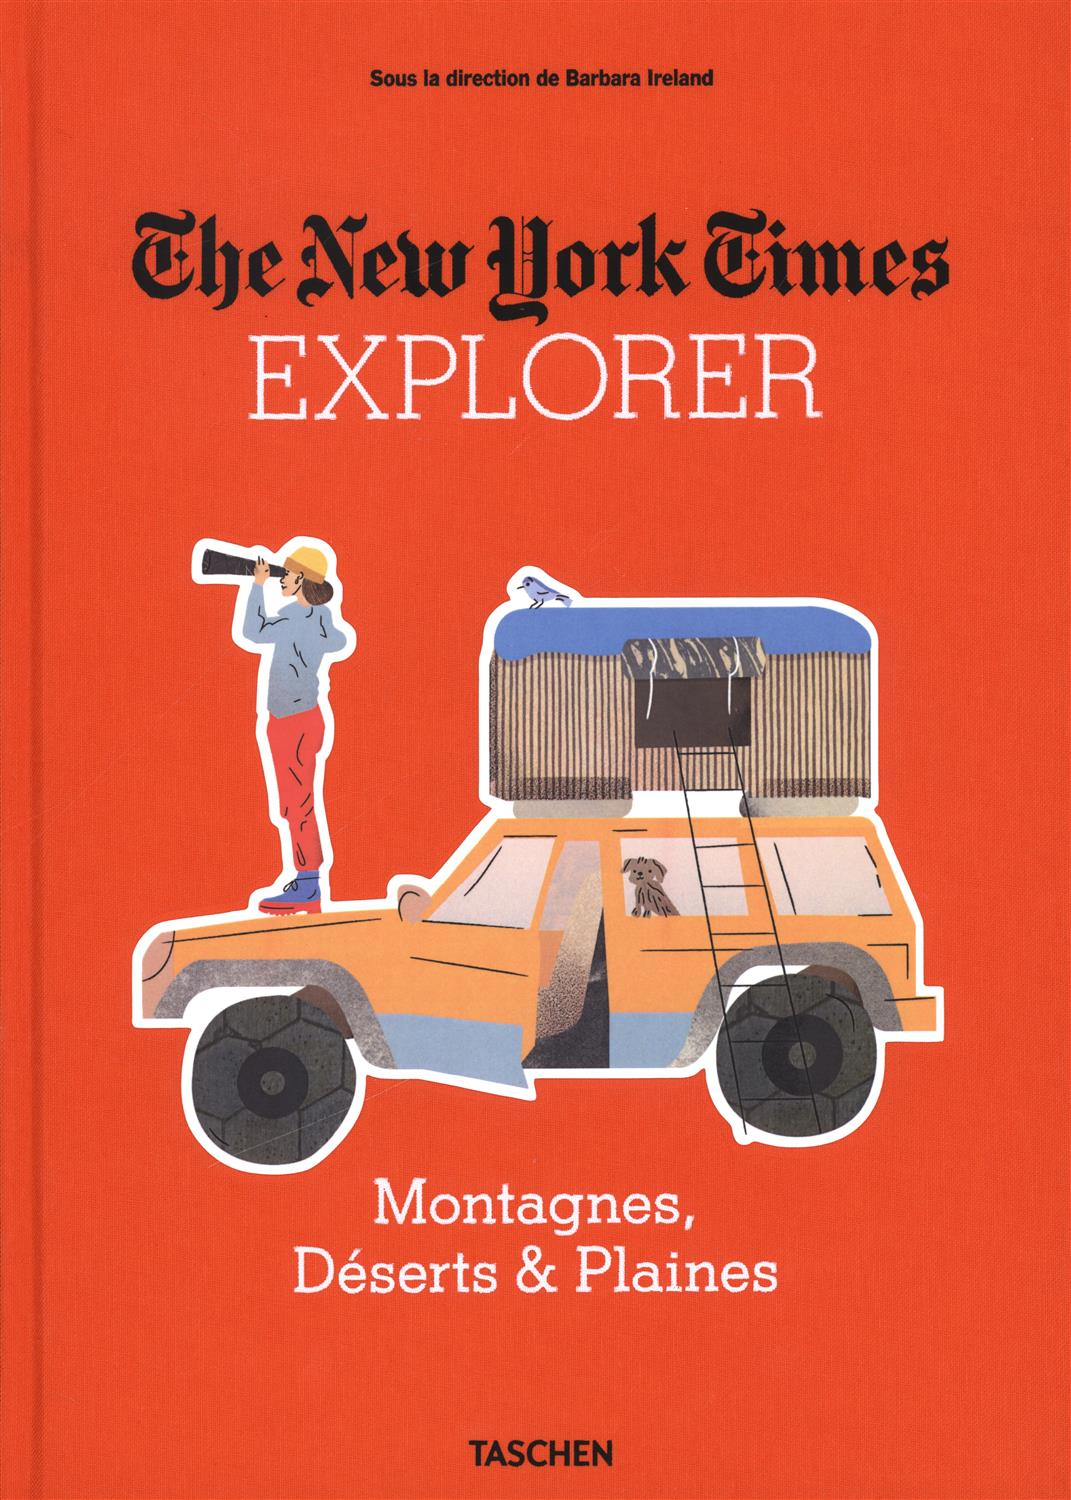 The New York Times Explorer : Montagnes, déserts & plaines